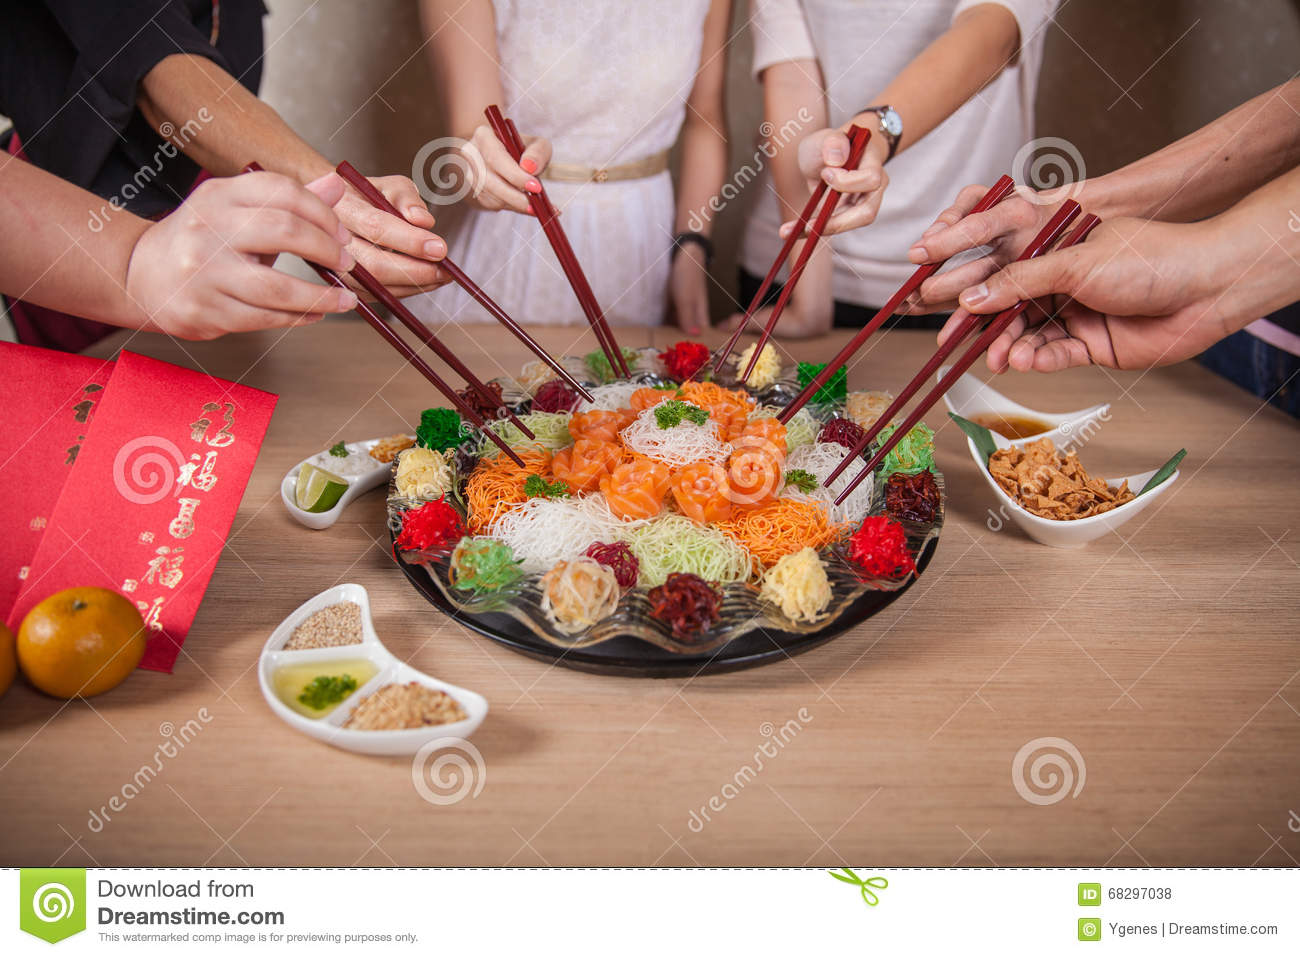 Asian Prosperity Toss, Lohei, Yusheng, yee sang